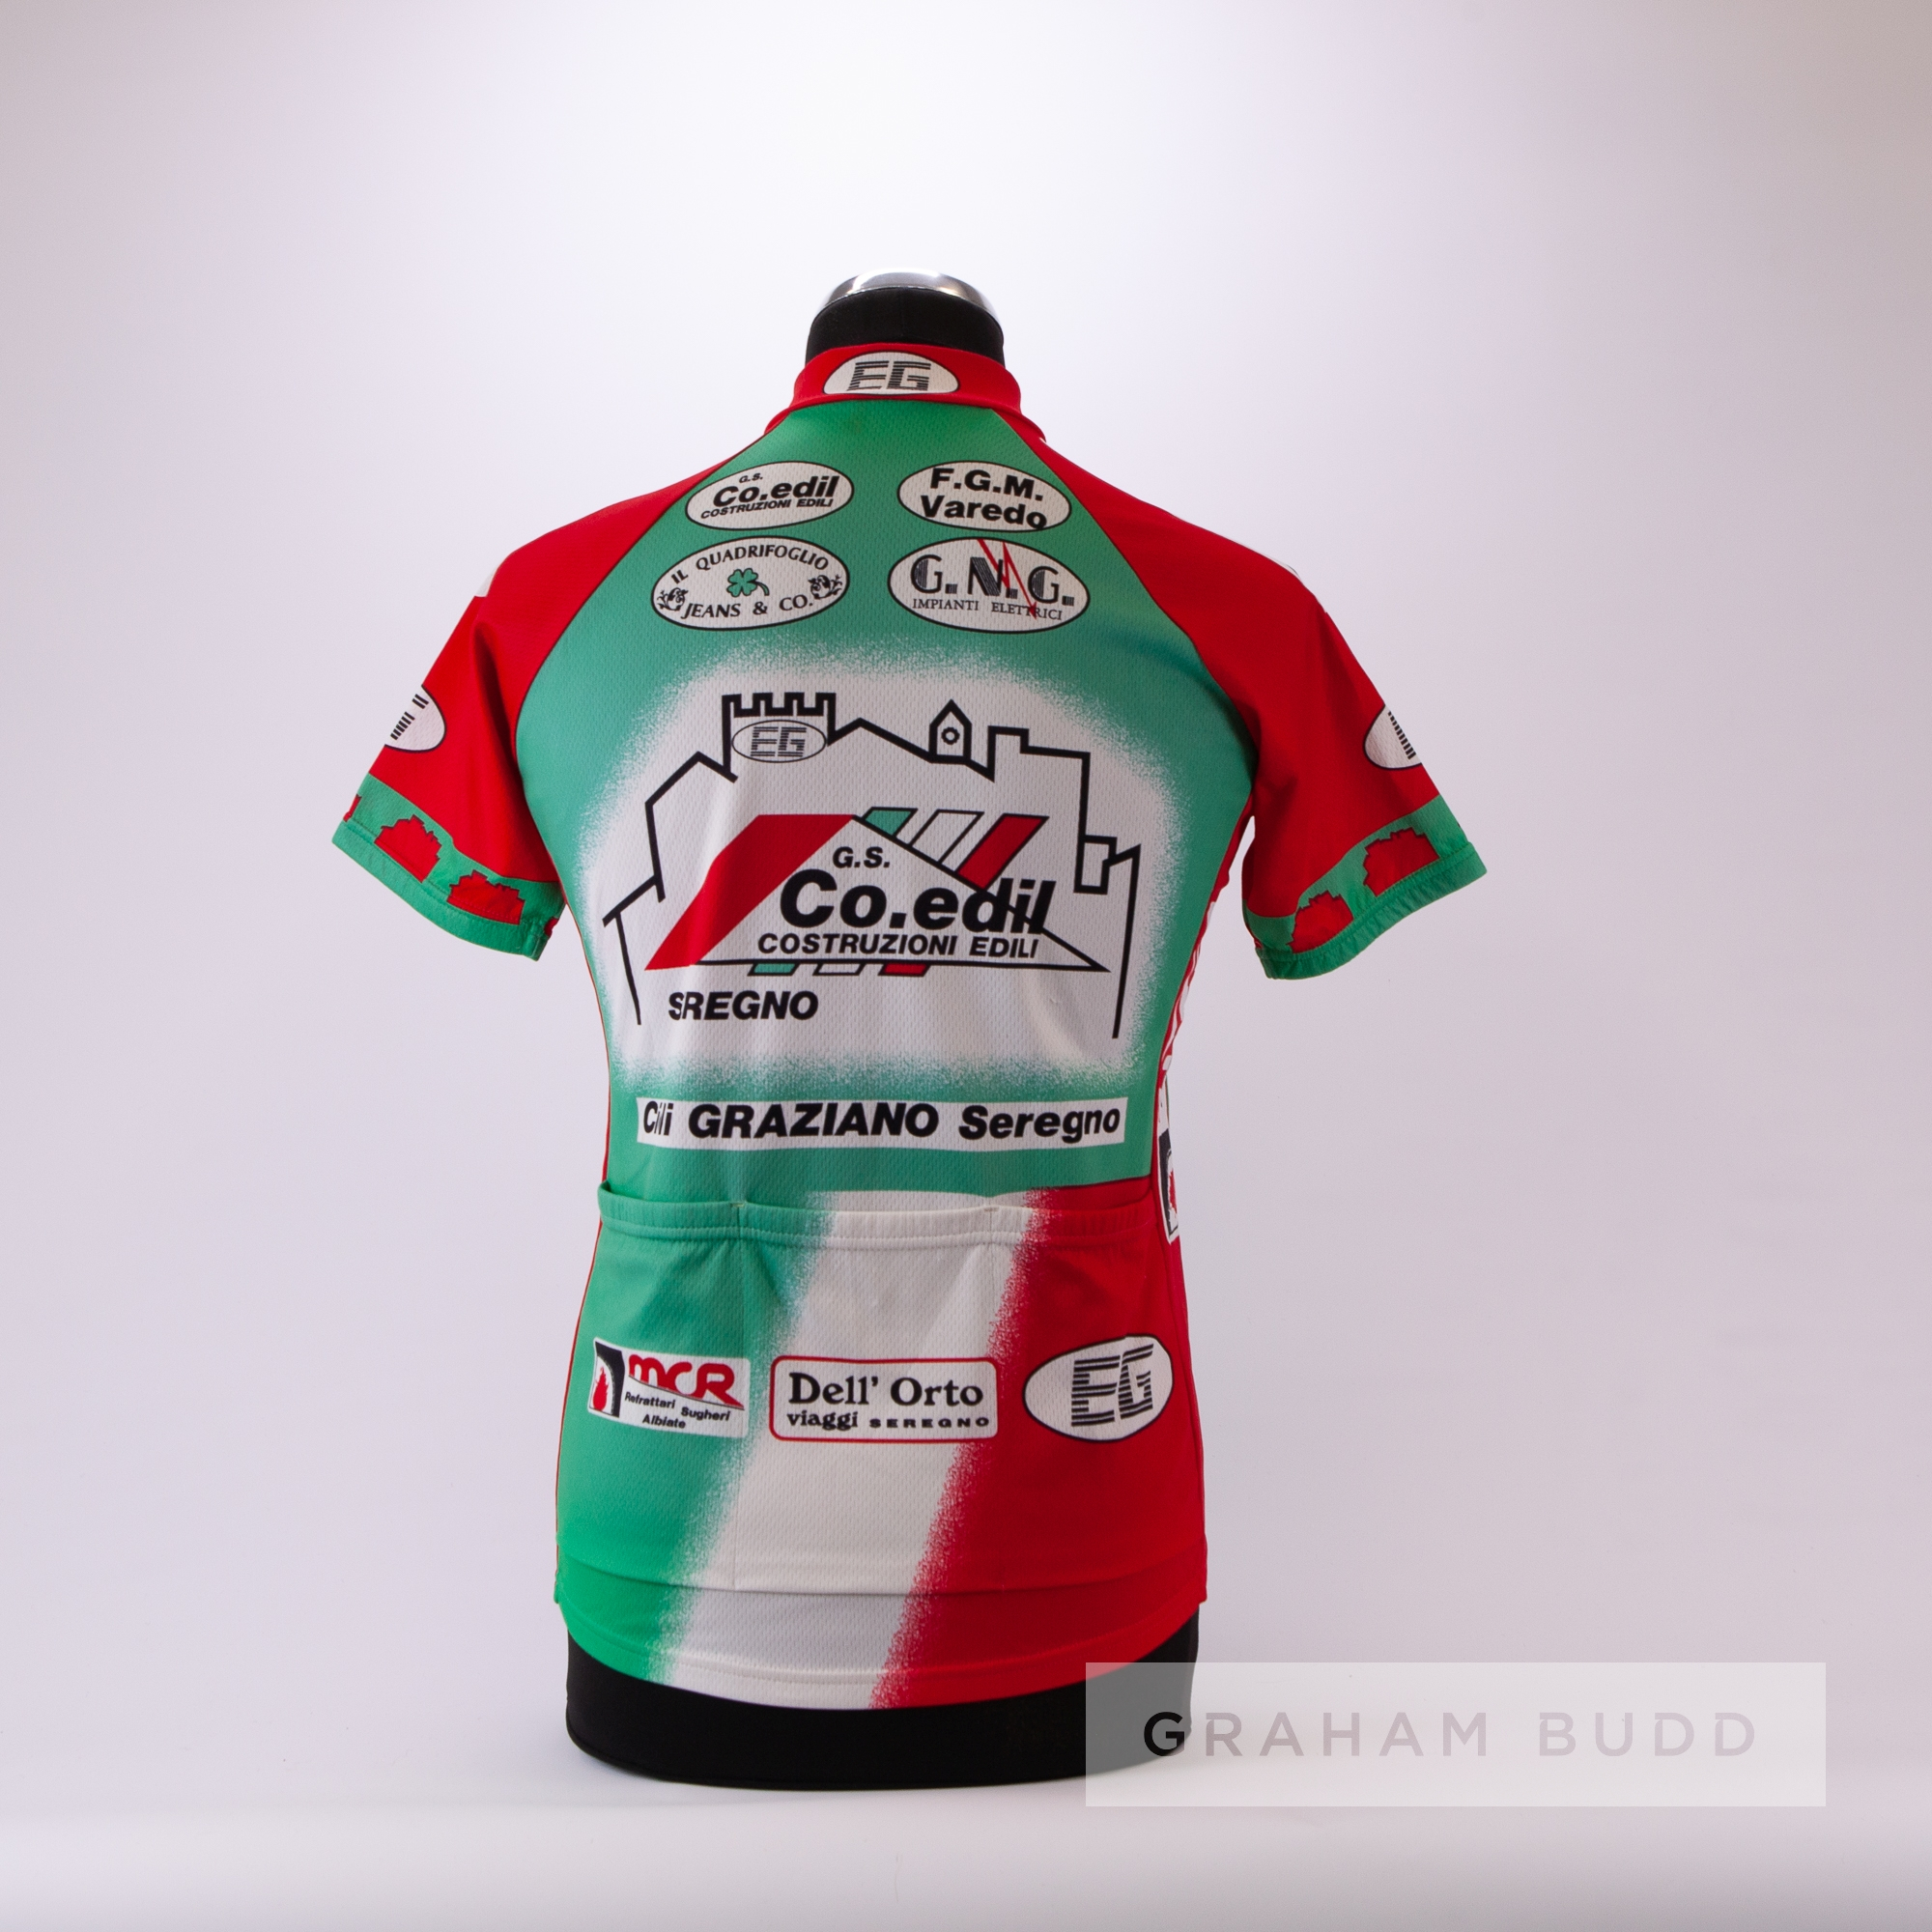 1998 red, green and white Italian Santini FGM Varedo Cycling race jersey, scarce, polyester and - Image 4 of 4